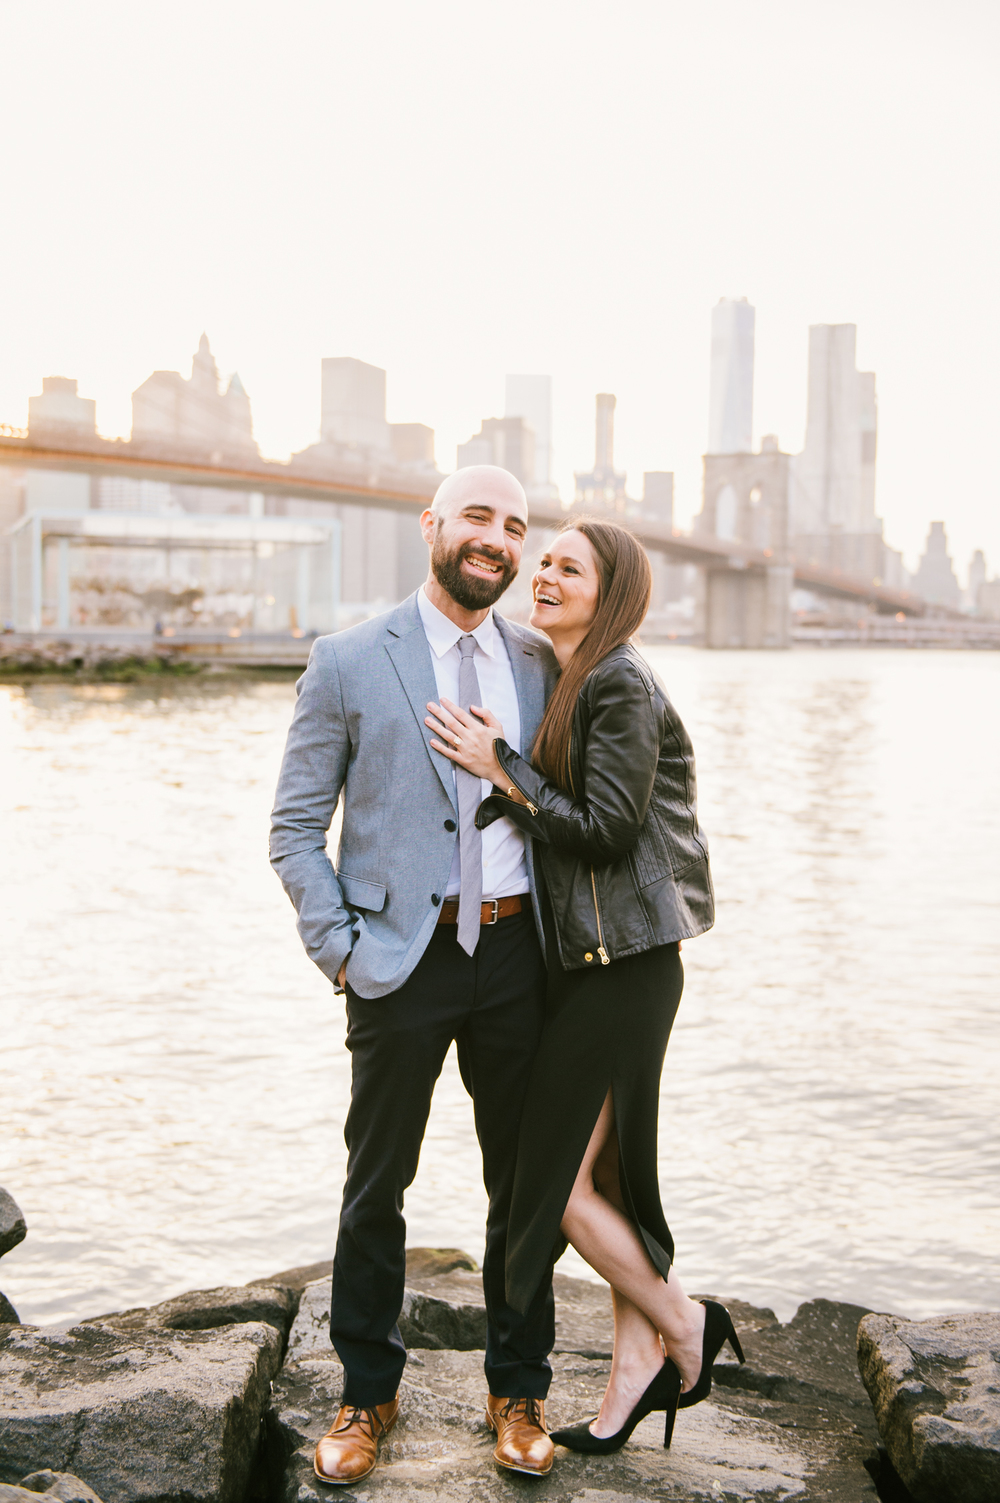 Dumbo.BrooklynBridge.Engagements.Proposal.DMB12.jpg